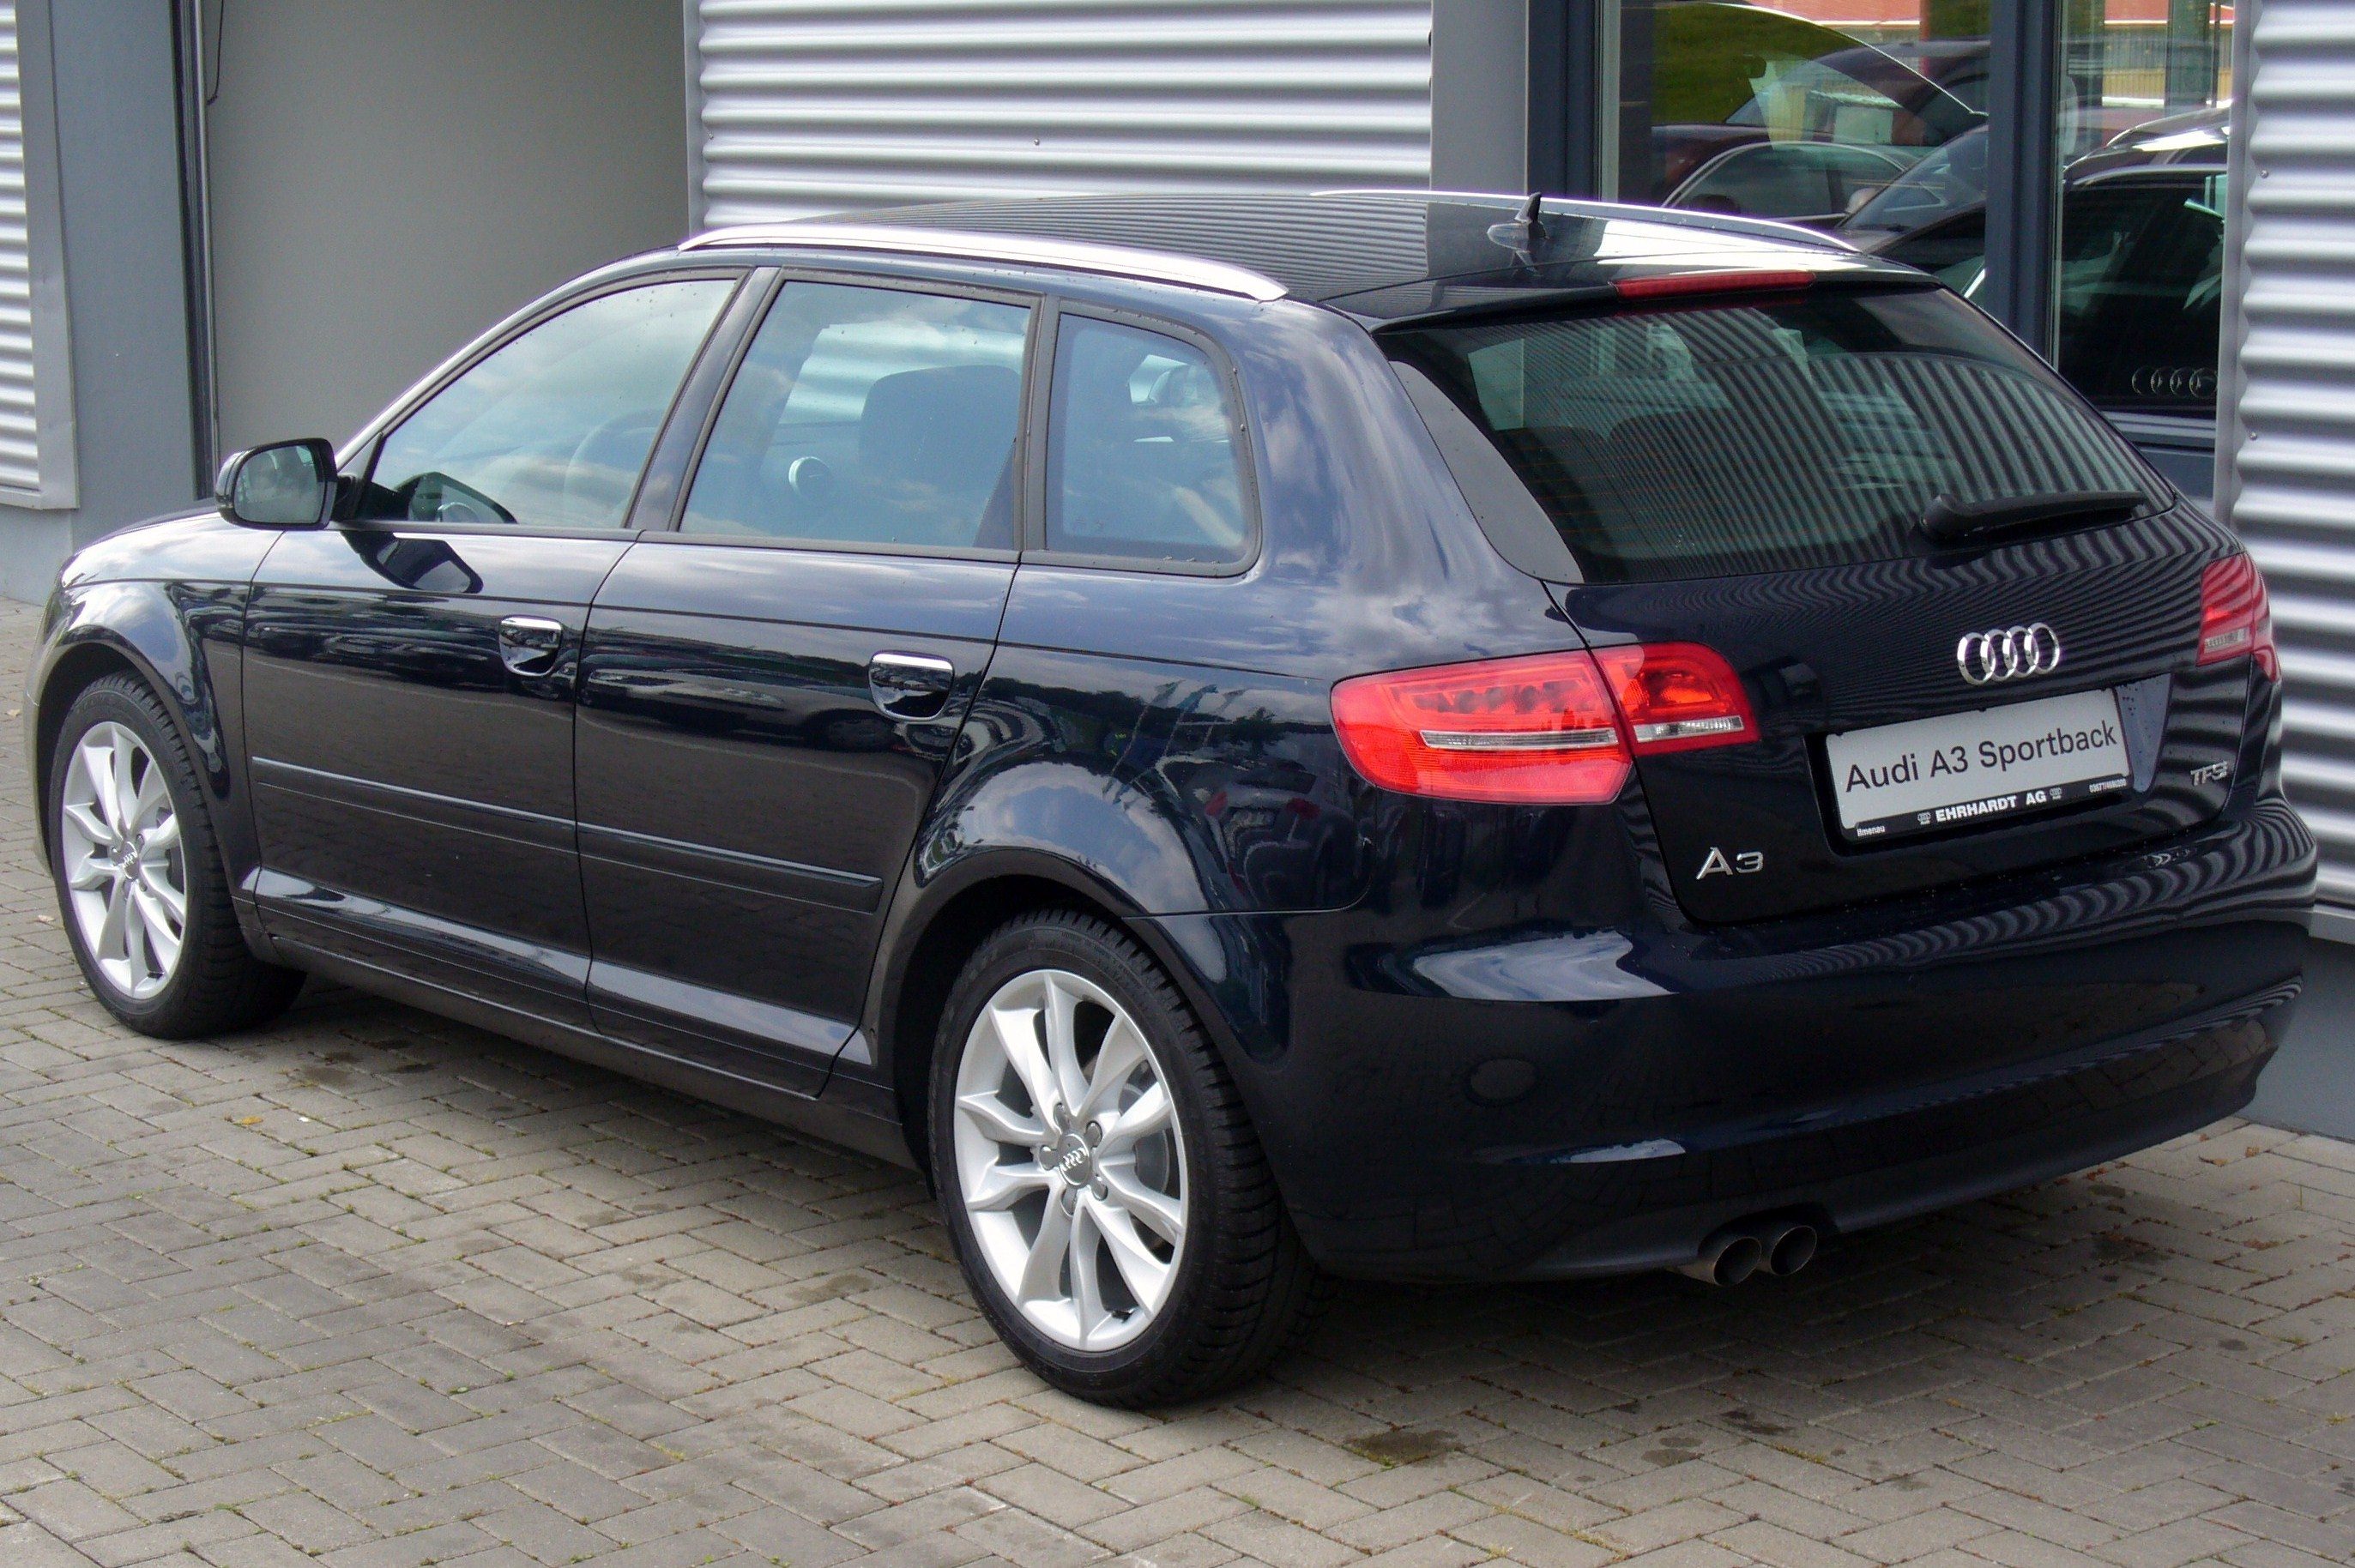 file audi a3 sportback ambition 1 4 tfsi s tronic tiefseeblau heck jpg wikimedia commons. Black Bedroom Furniture Sets. Home Design Ideas